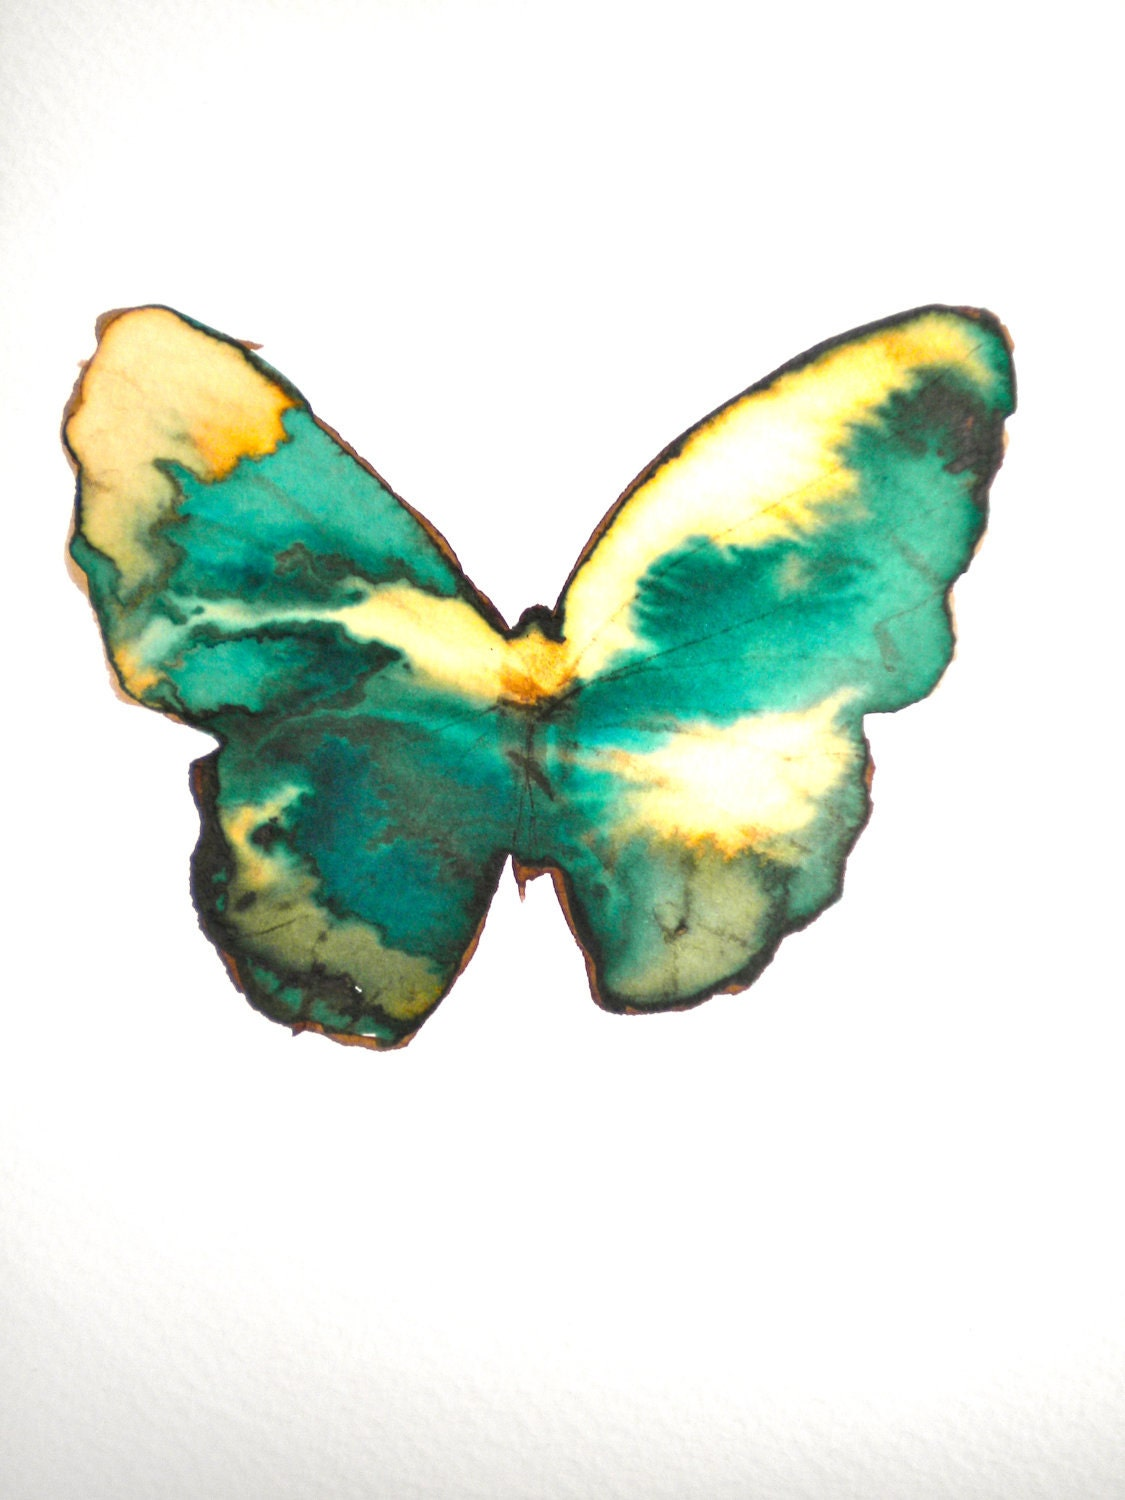 green and gold flecked butterfly - metamorphosing